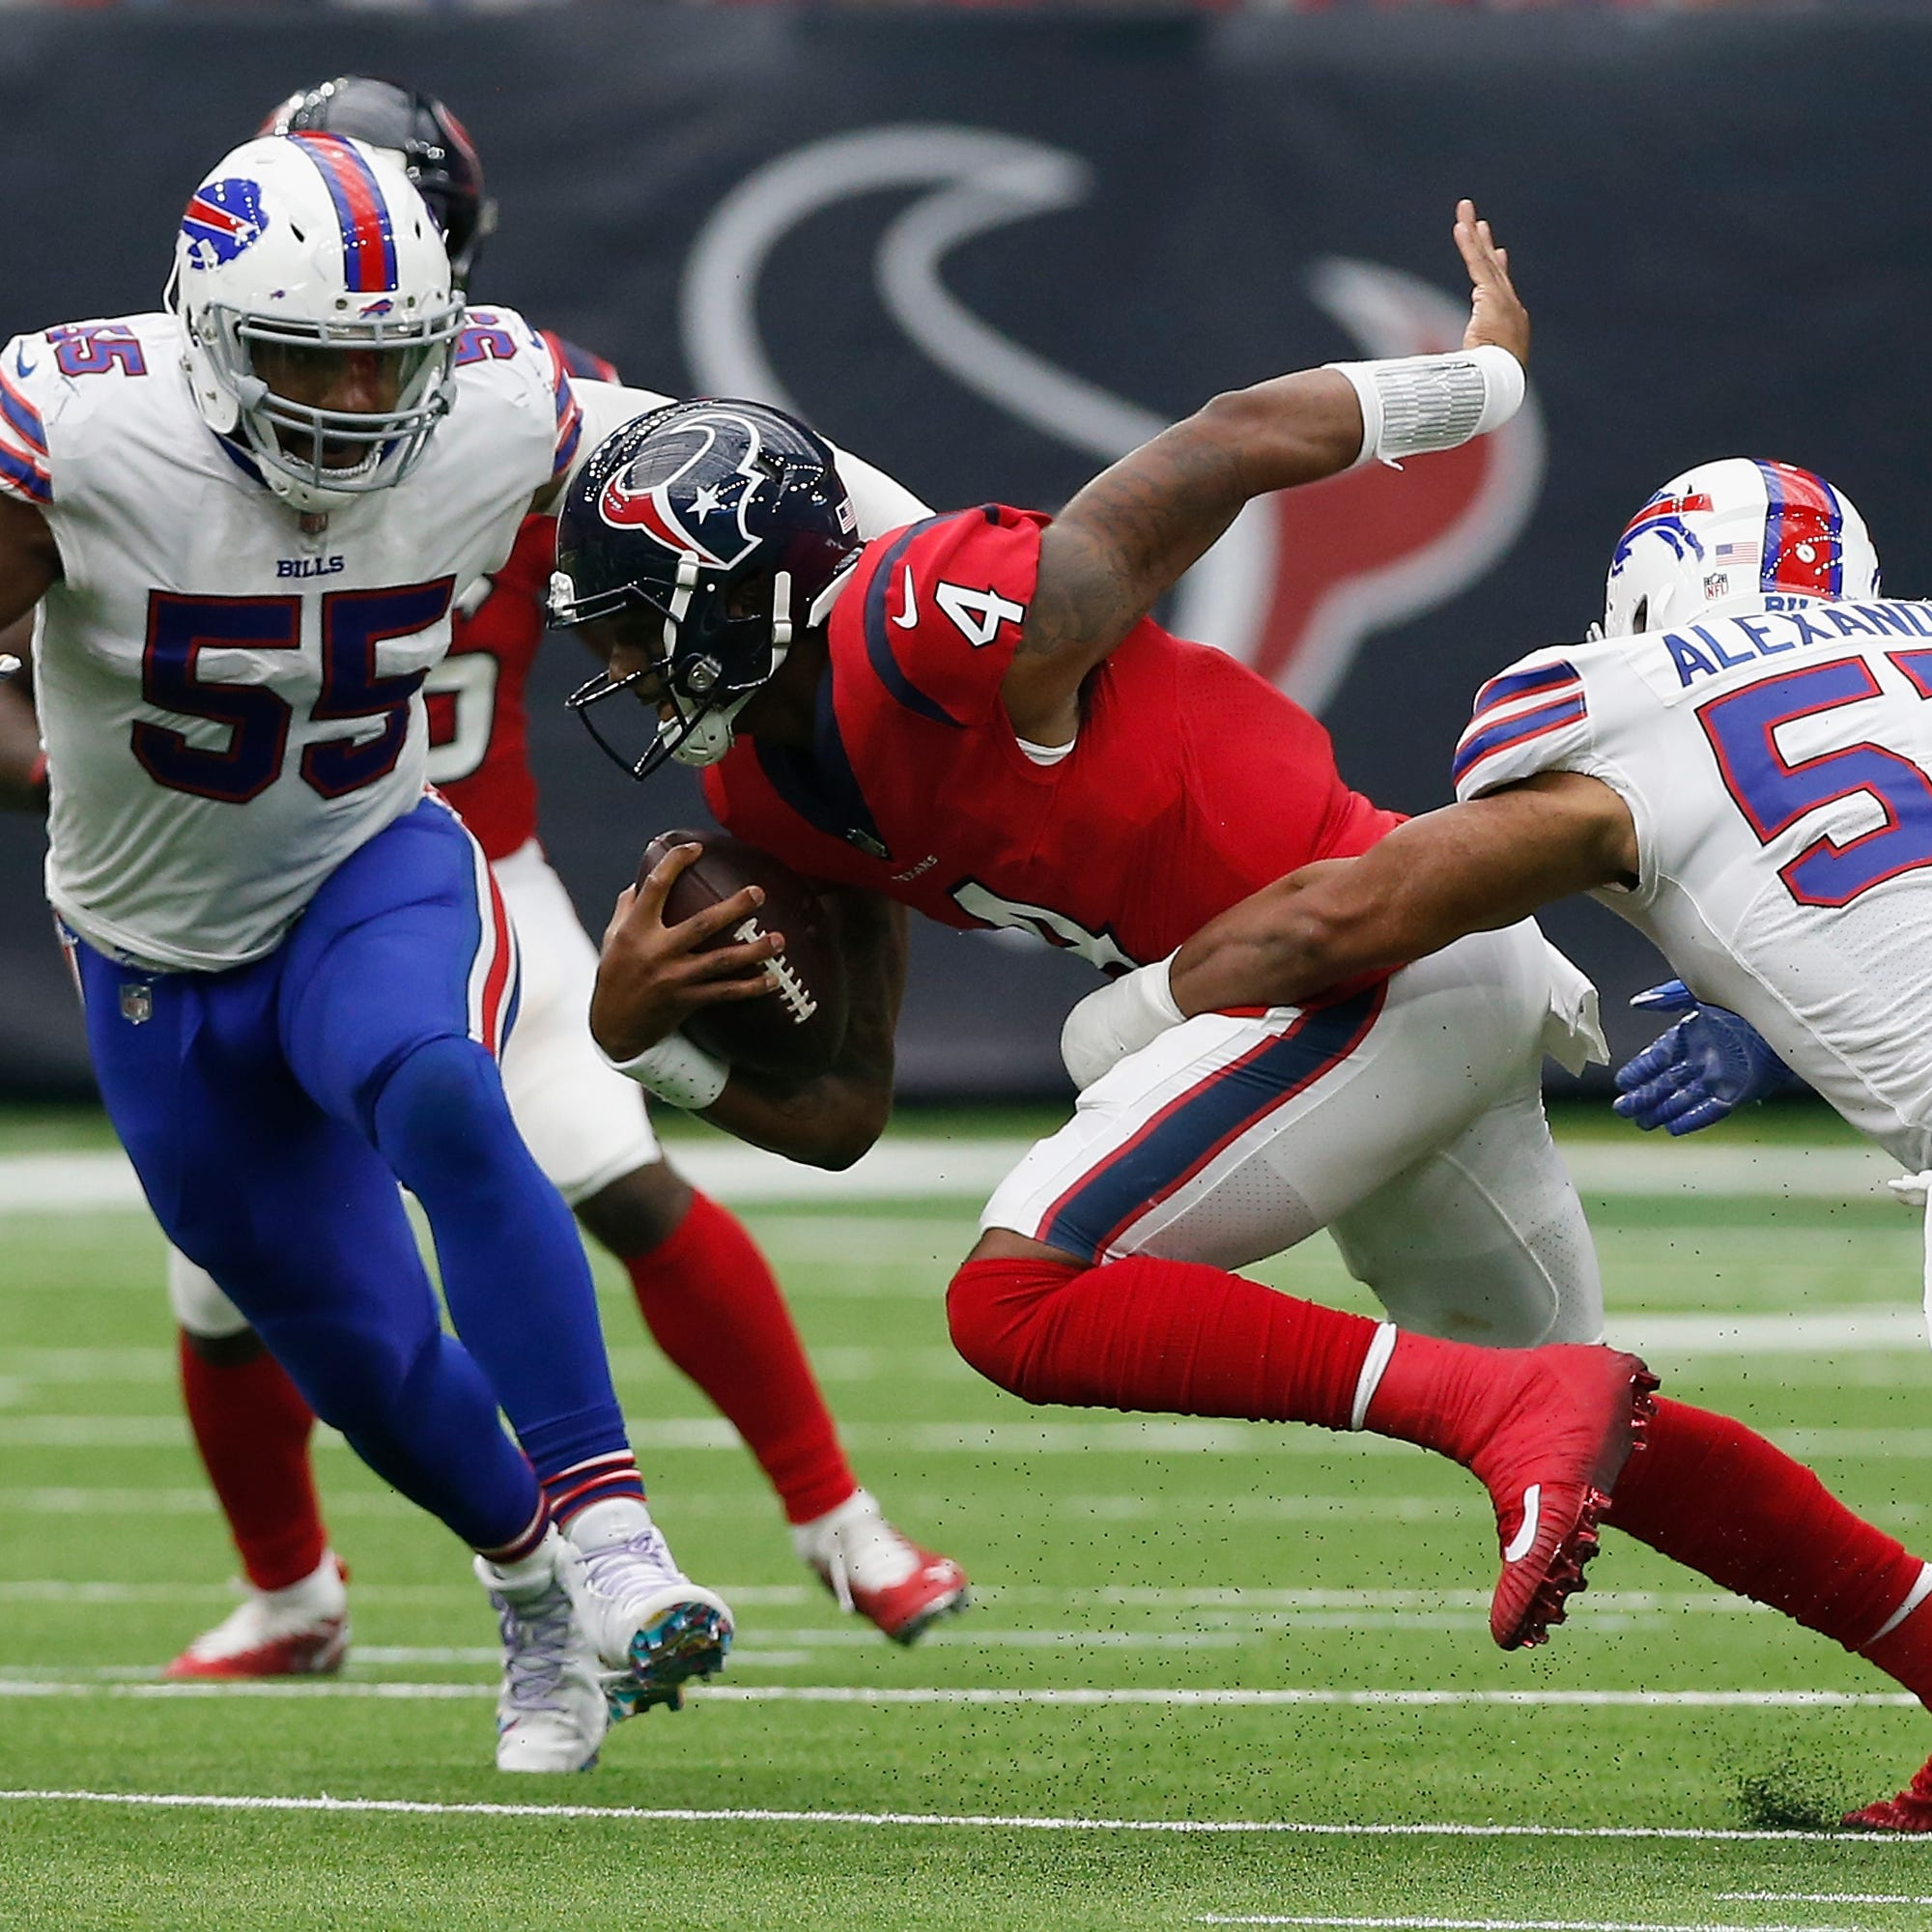 Bills defense on a roll but will luck hold out against Andrew Luck and Colts?